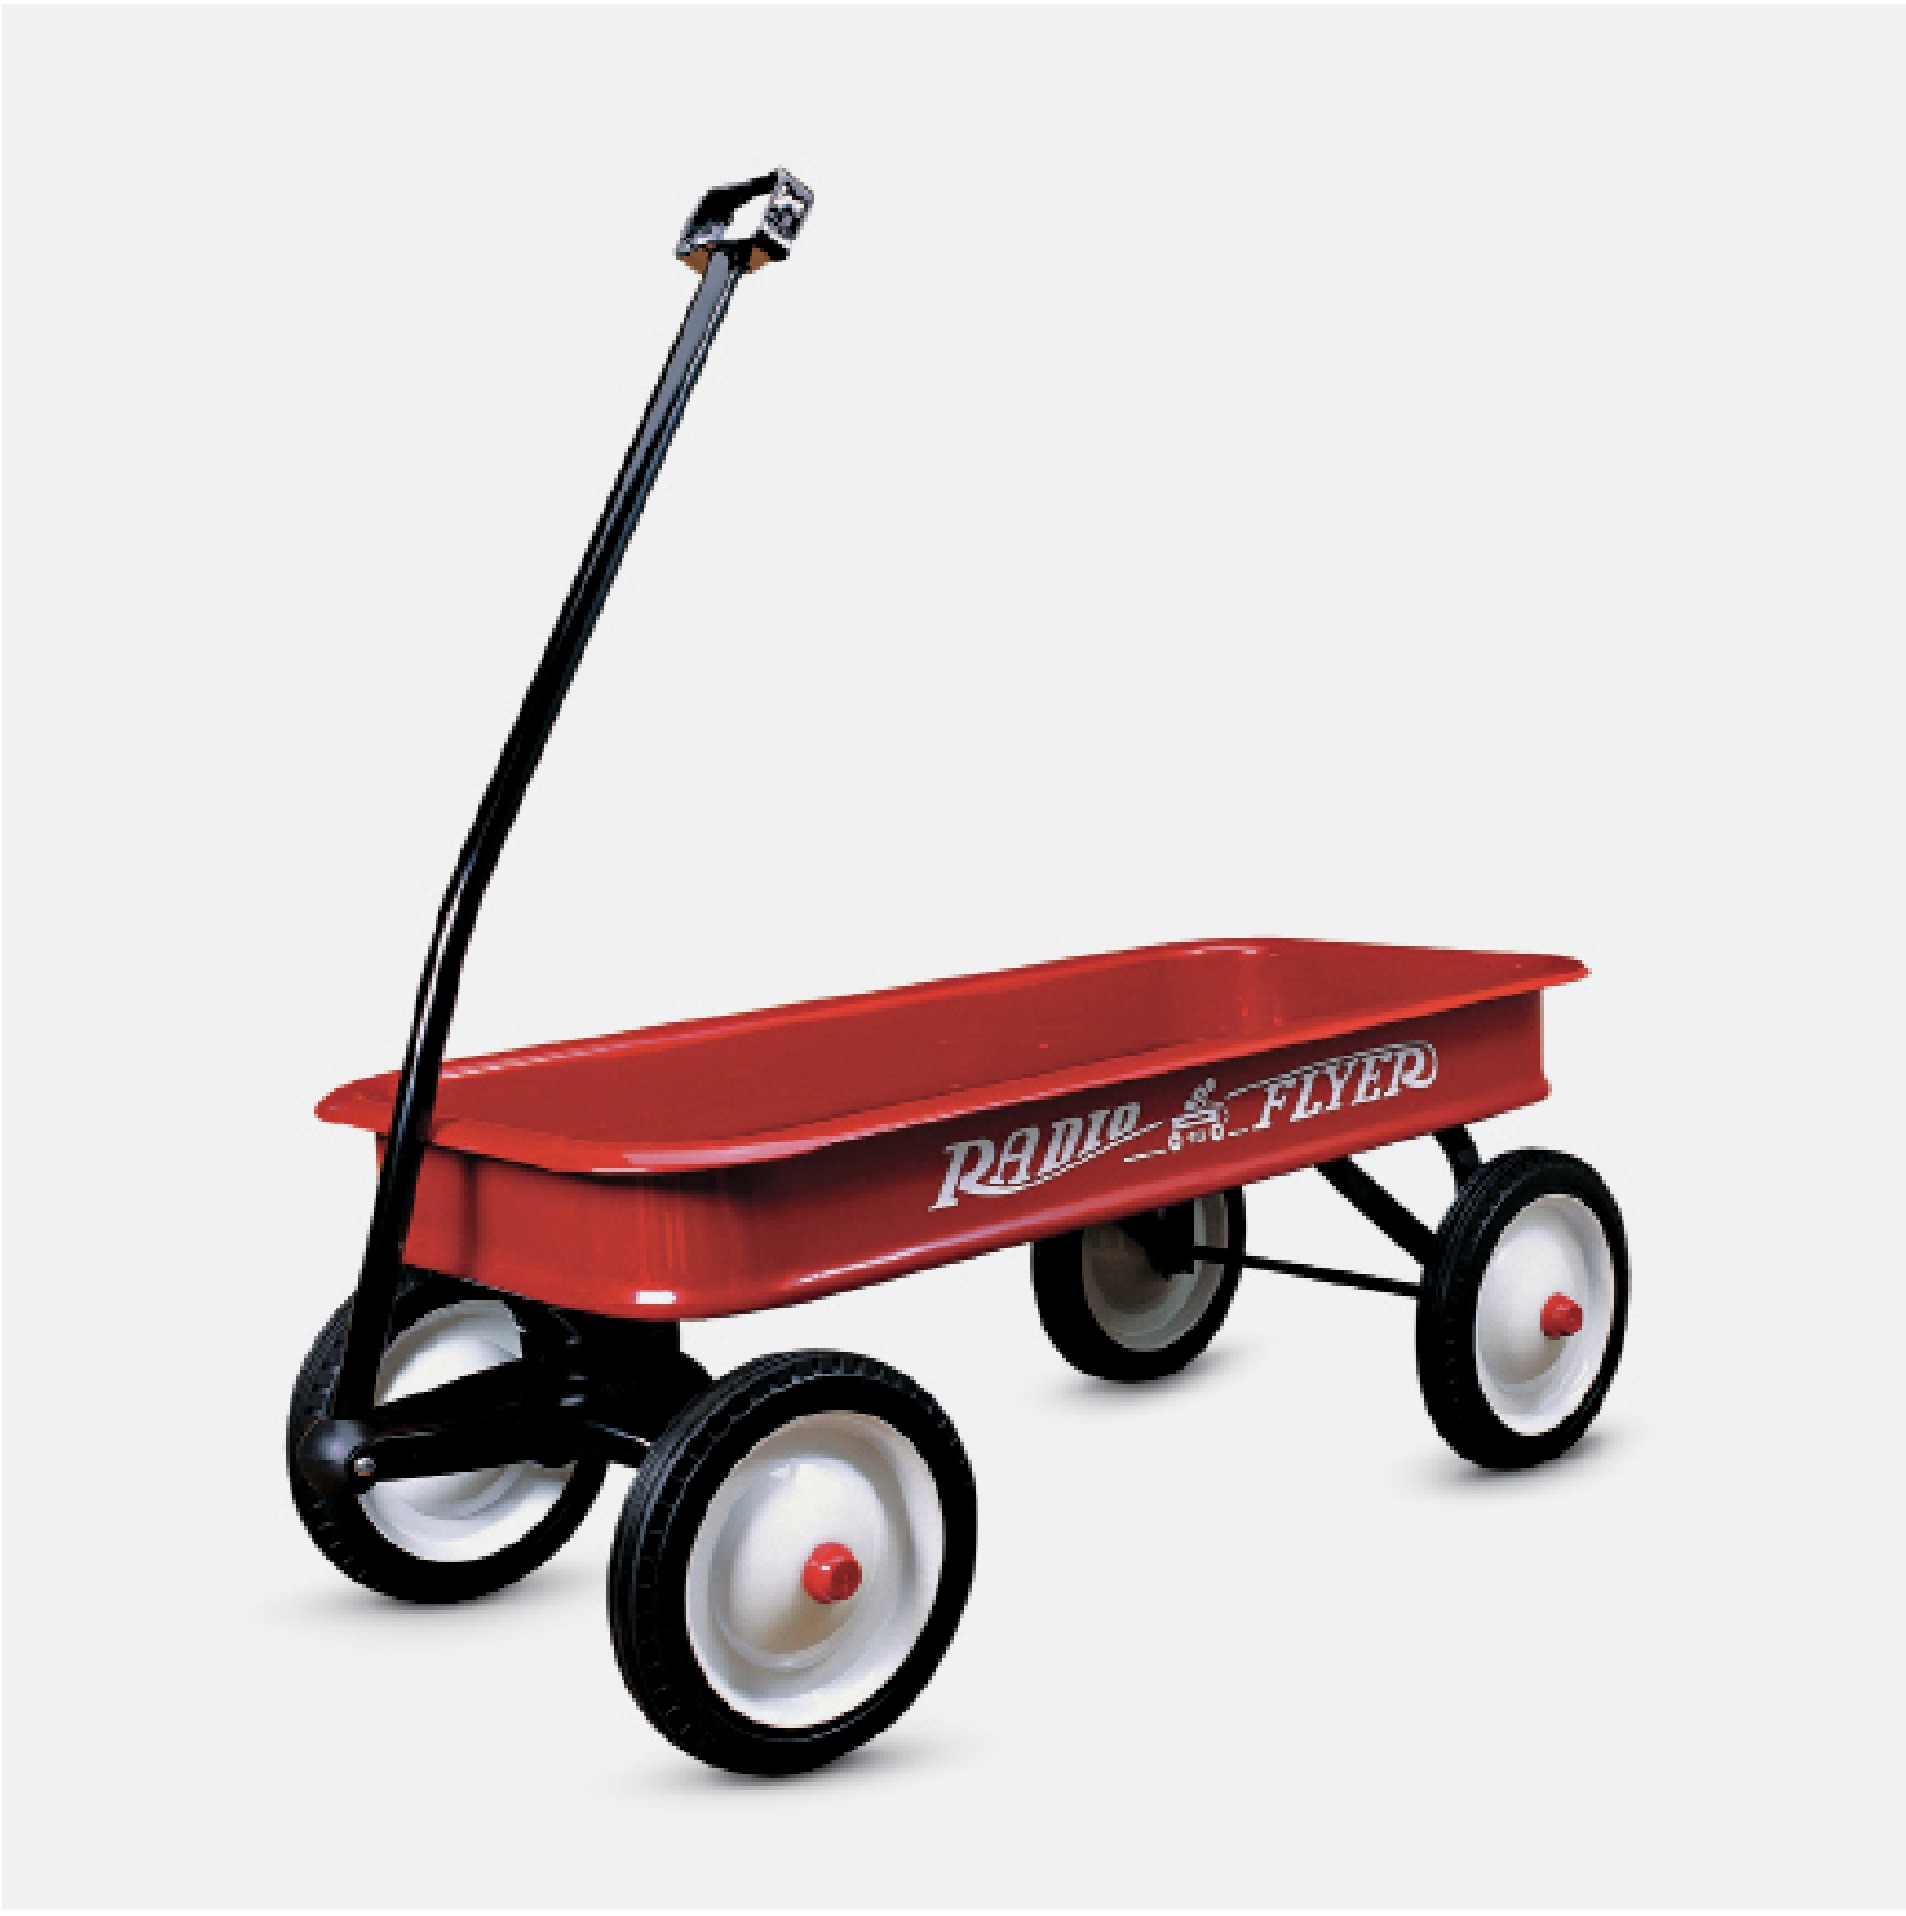 Classic Red Wagon, 1940, by Radio Flyer, created by Antonio Pasin, as featured in Design for Children